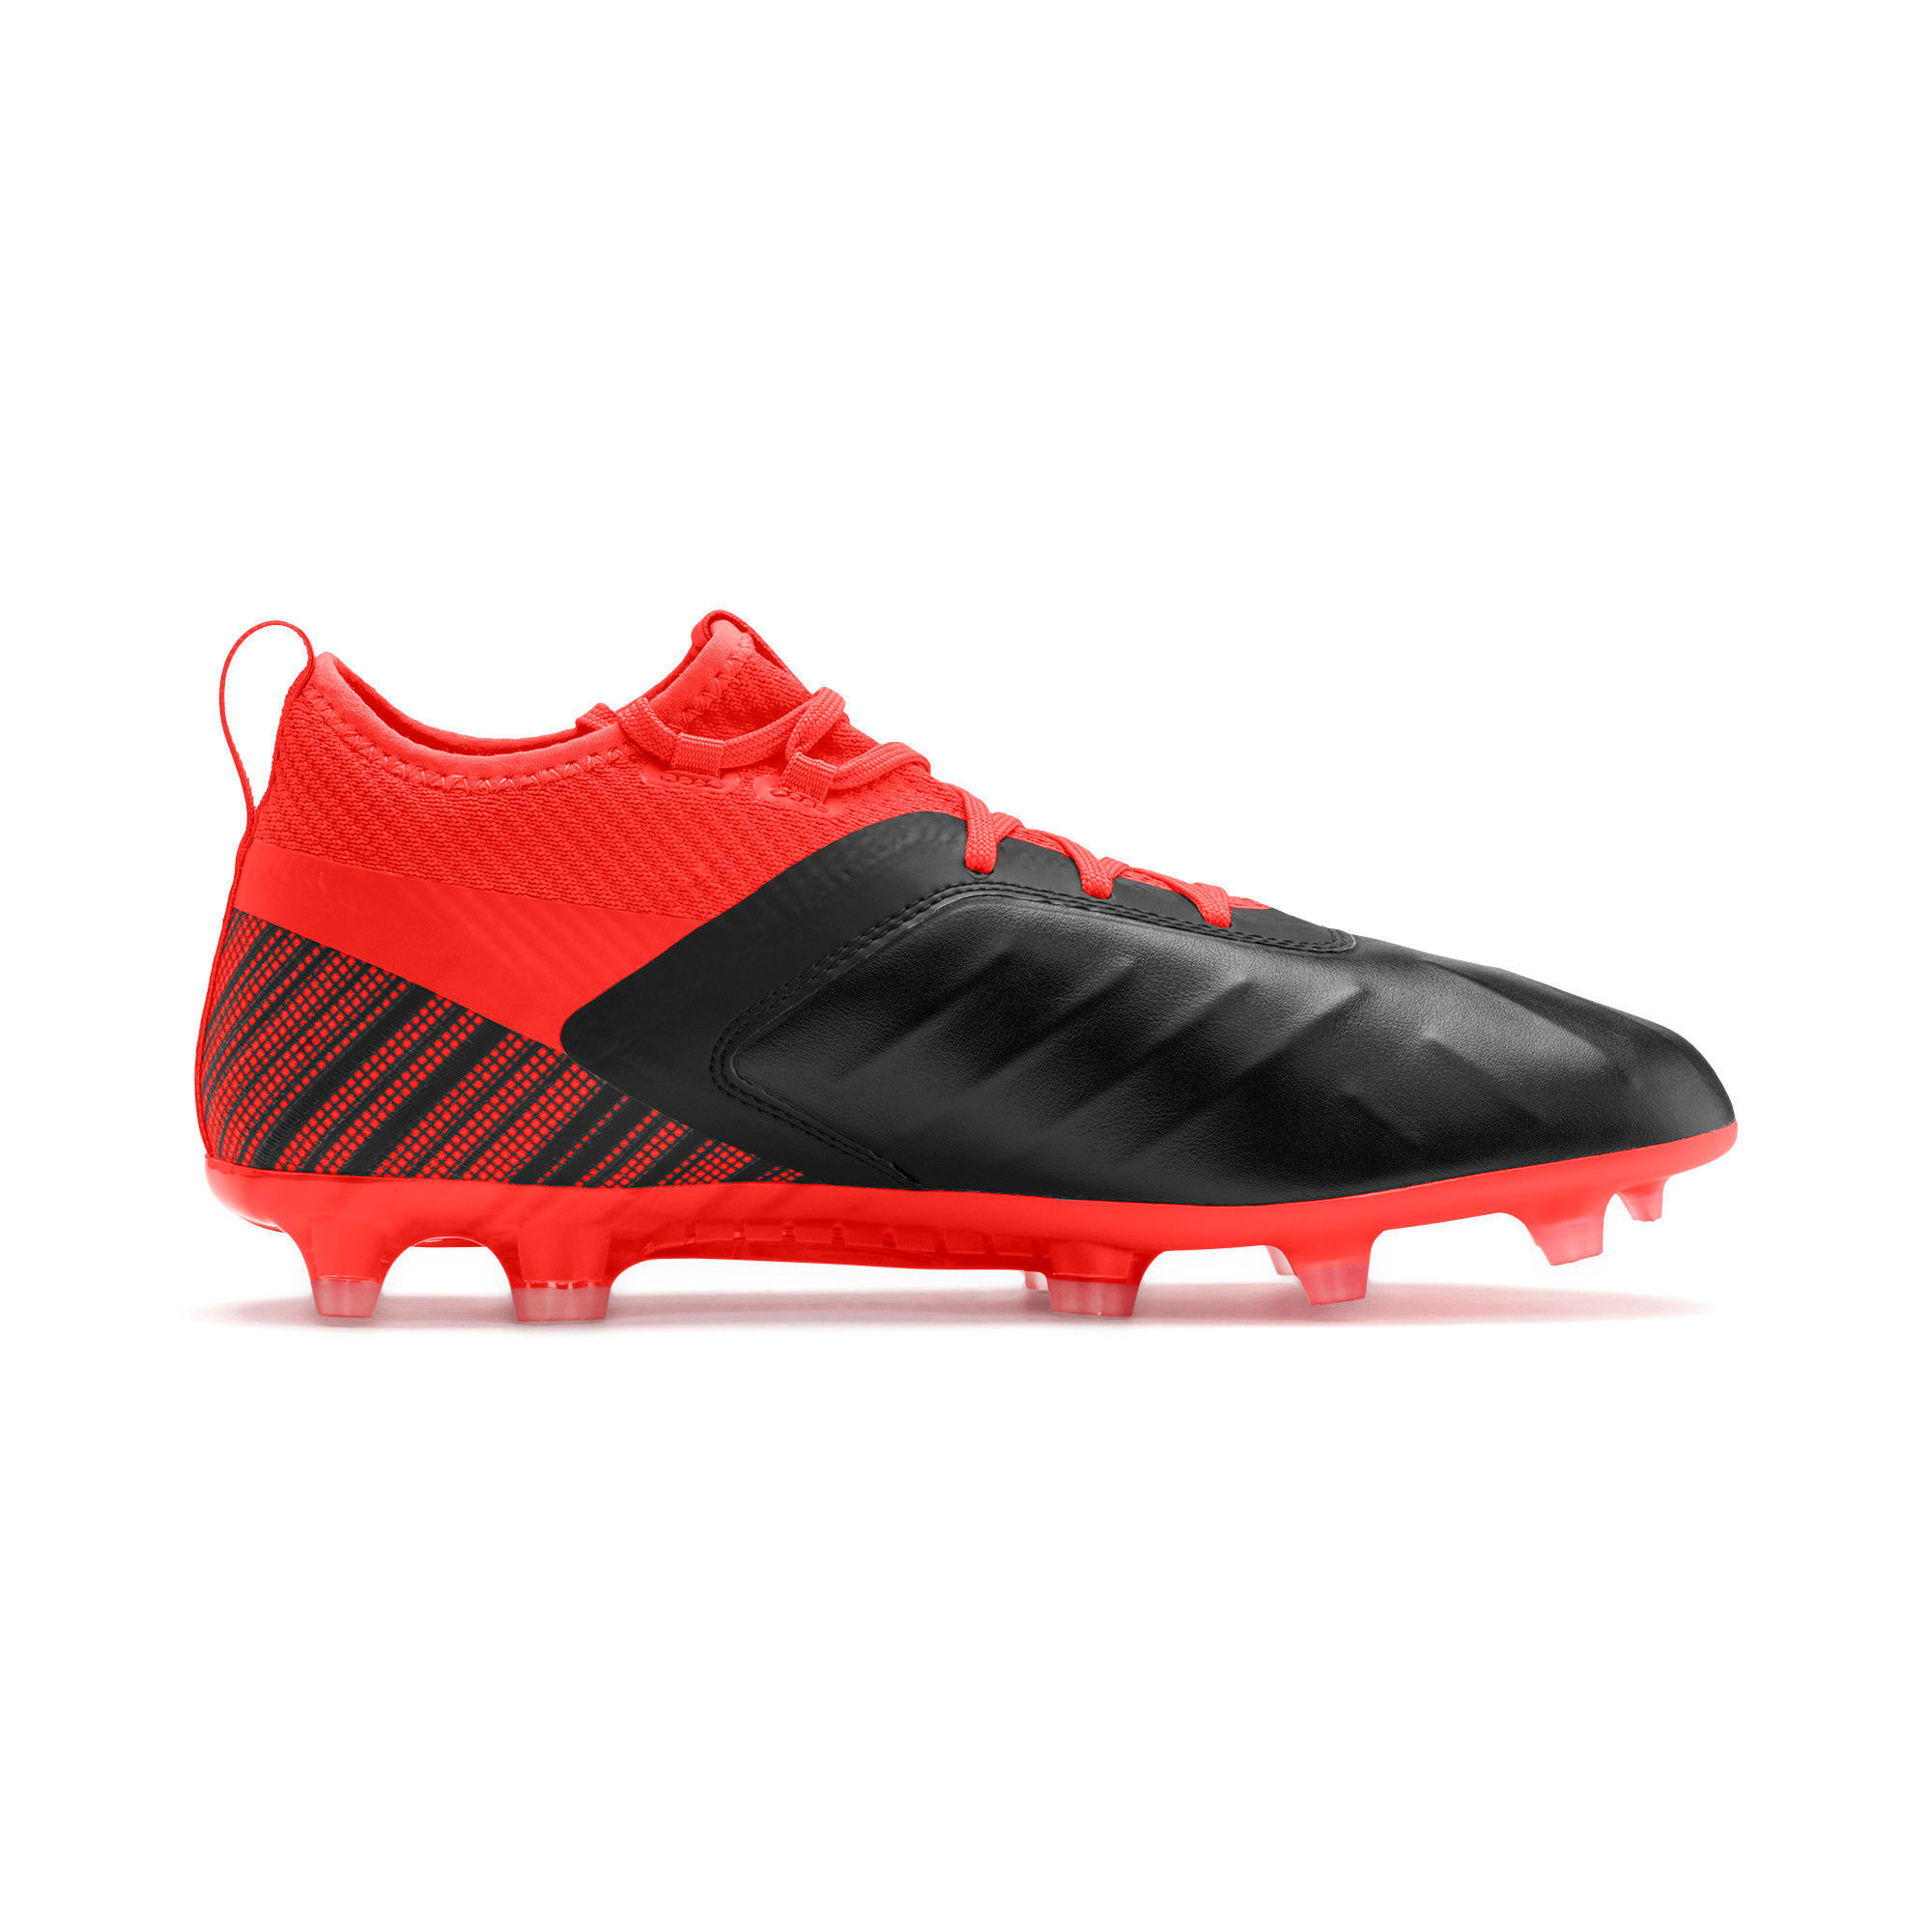 Thumbnail 6 of PUMA ONE 5.2 FG/AG Herren Fußballschuhe, Black-Nrgy Red-Aged Silver, medium